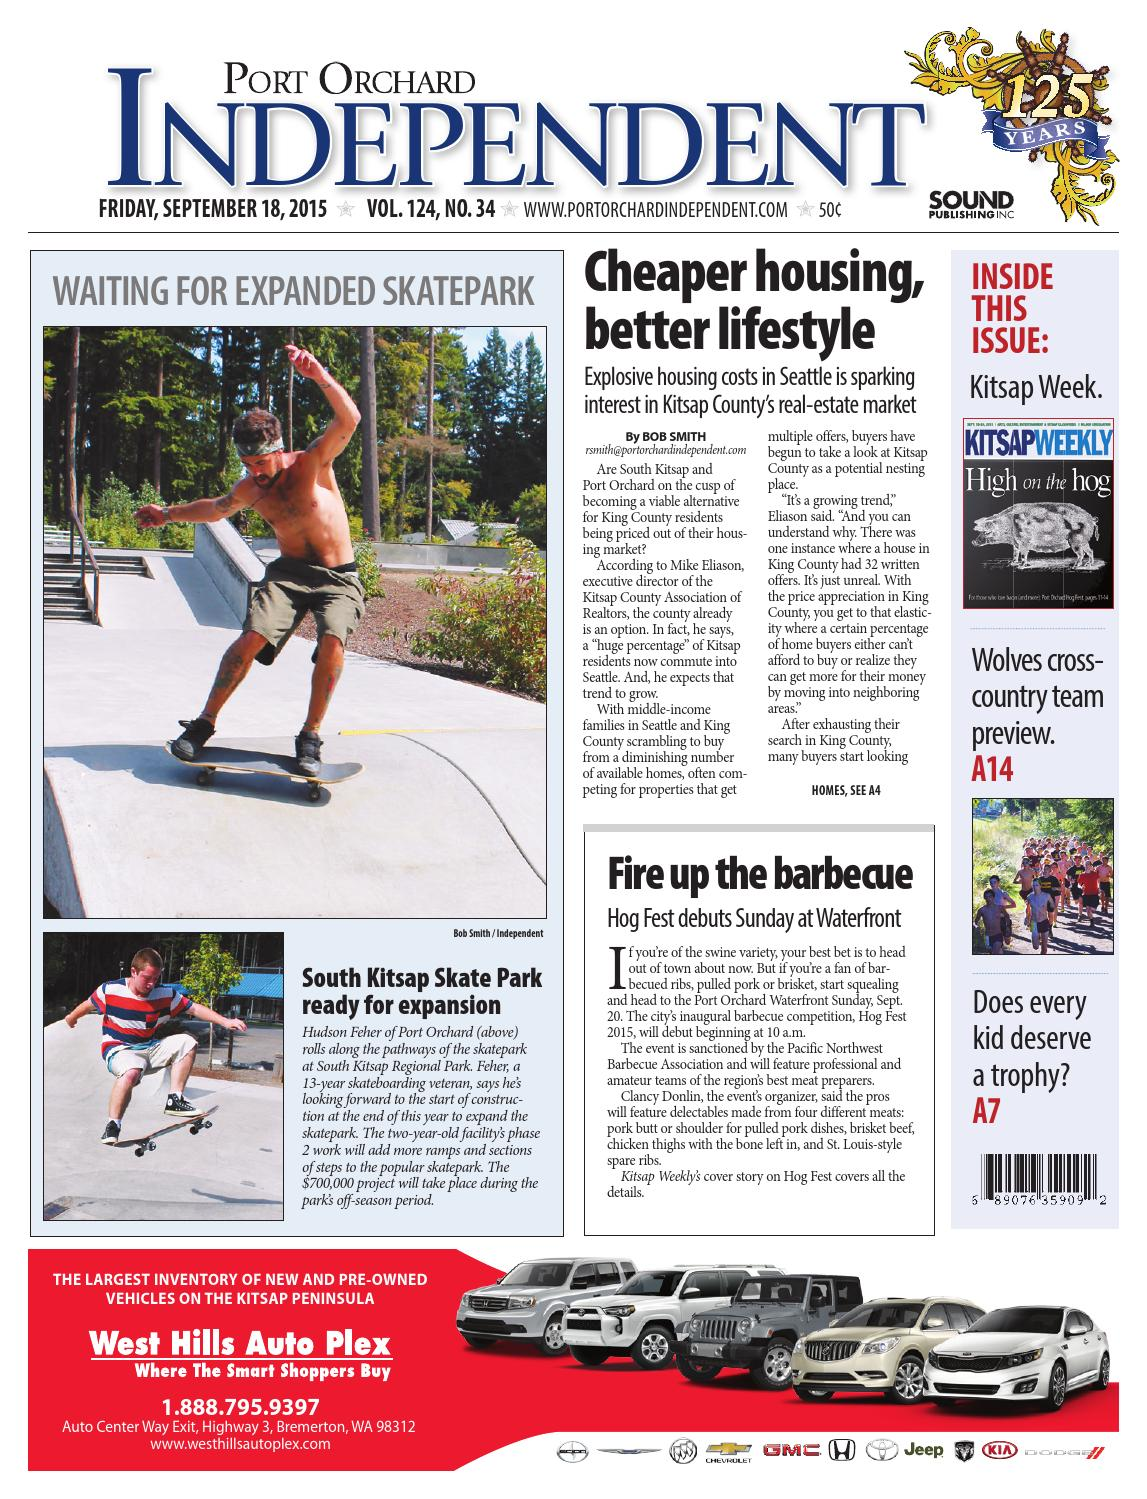 port orchard independent, september 18, 2015 by sound publishing